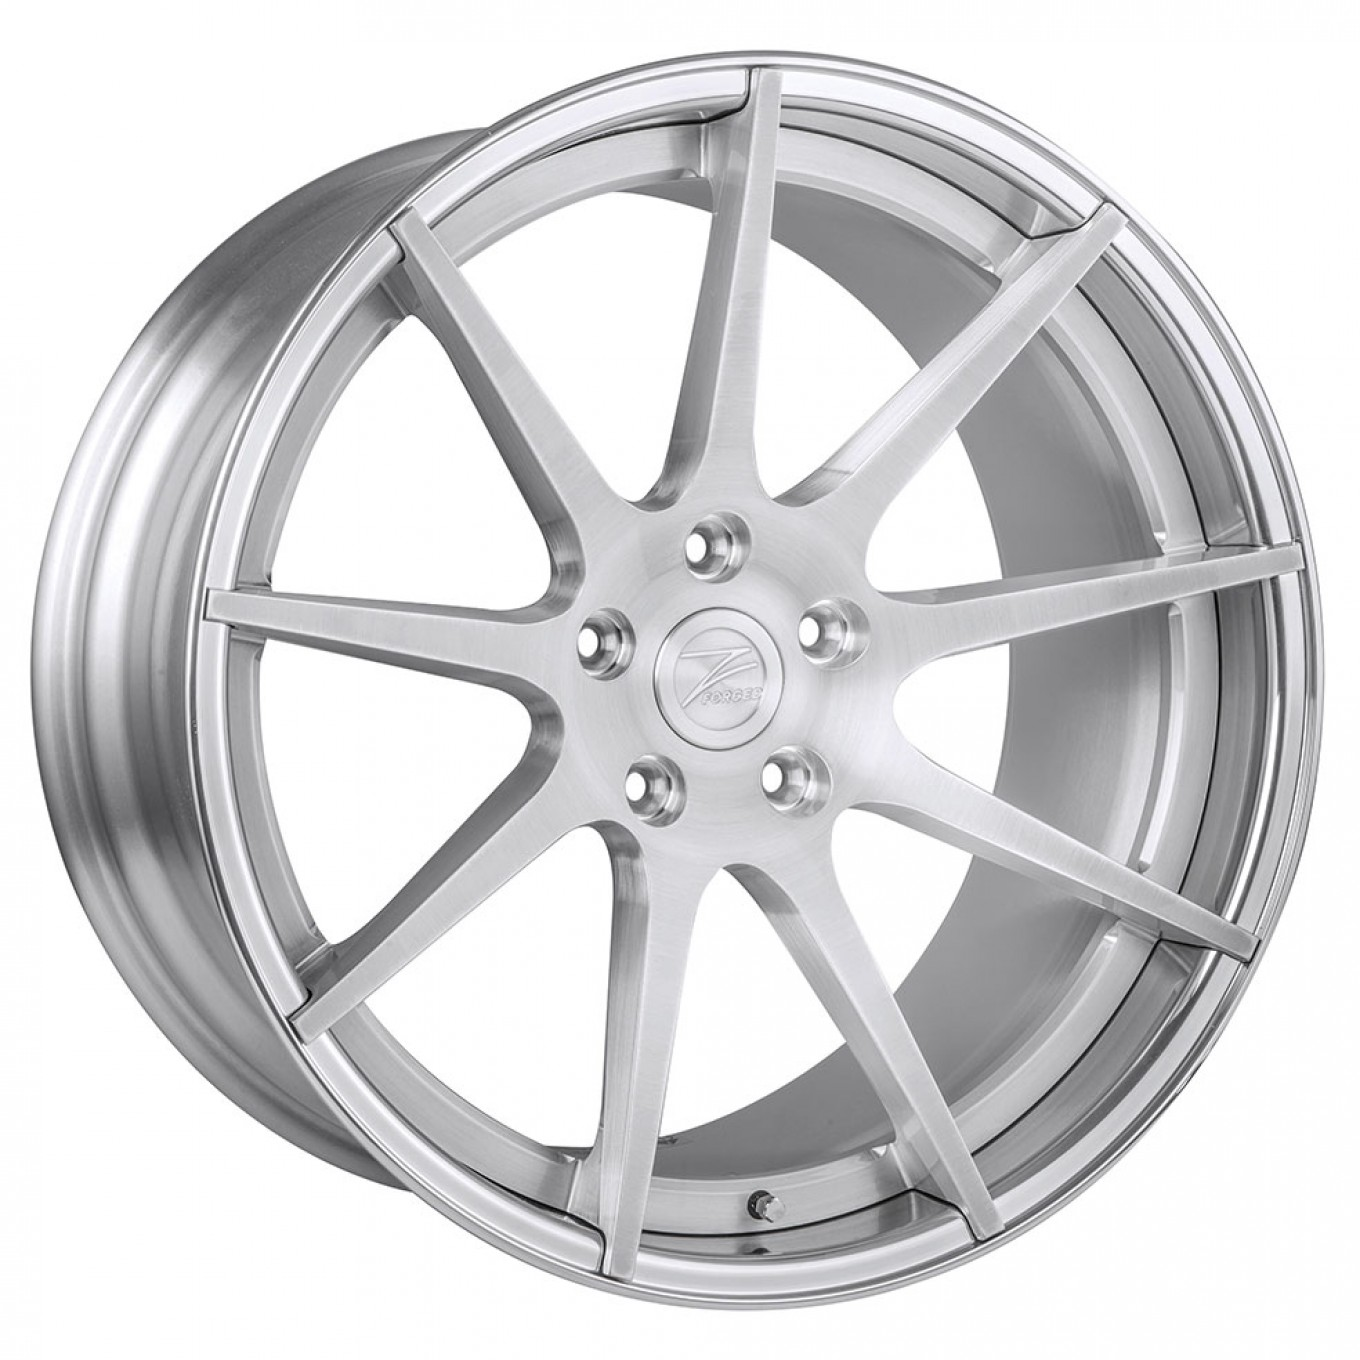 ZP.FORGED 8 Super Deep Concave | Brushed Silver